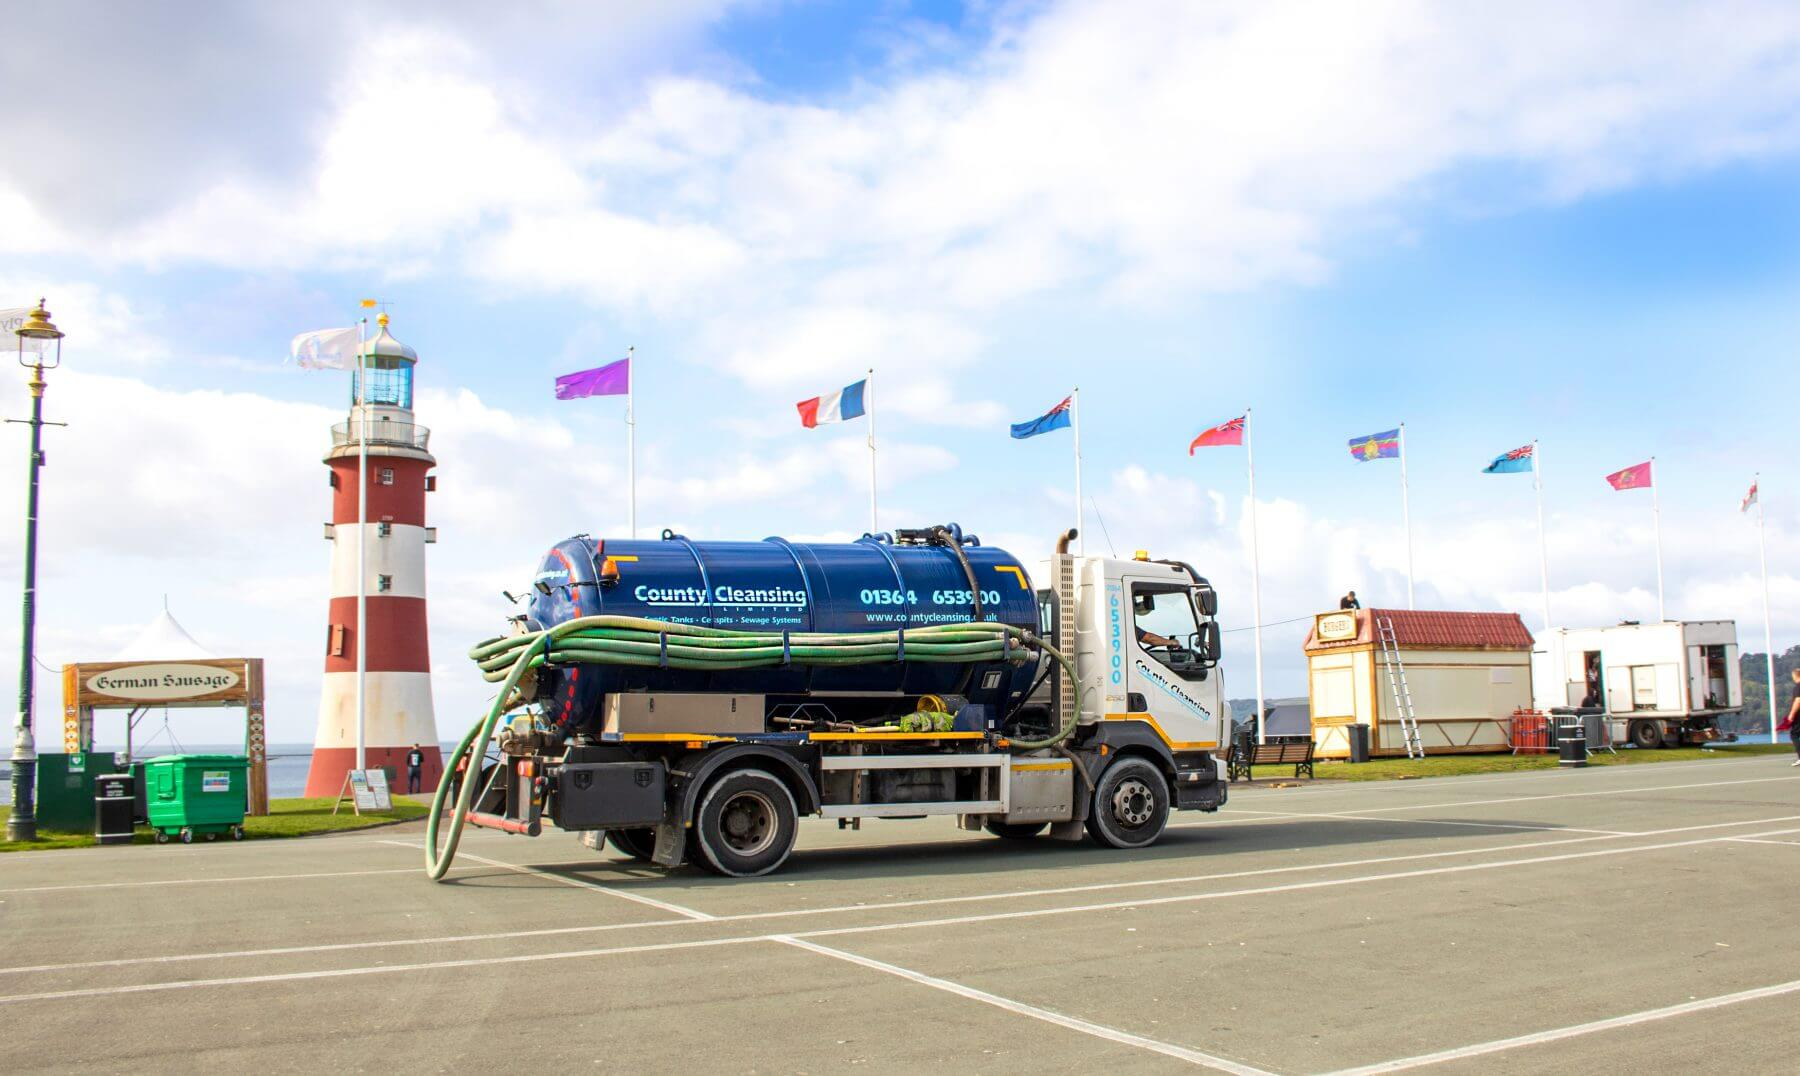 Septic Tank Emptying provided by County Cleansing Limited